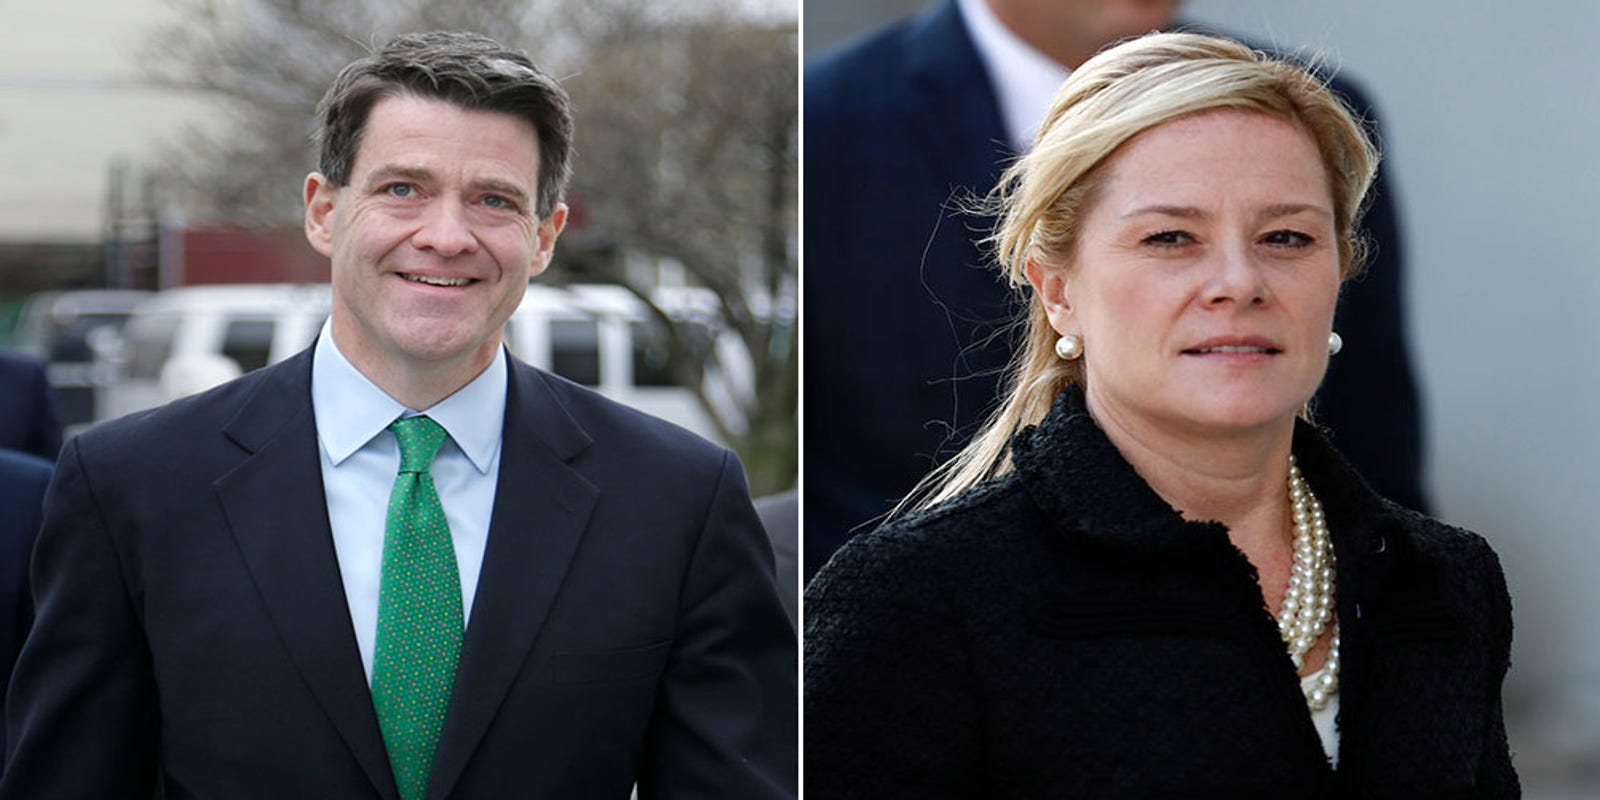 Bridgegate defense attorneys make their case in filings to U.S. Supreme Court